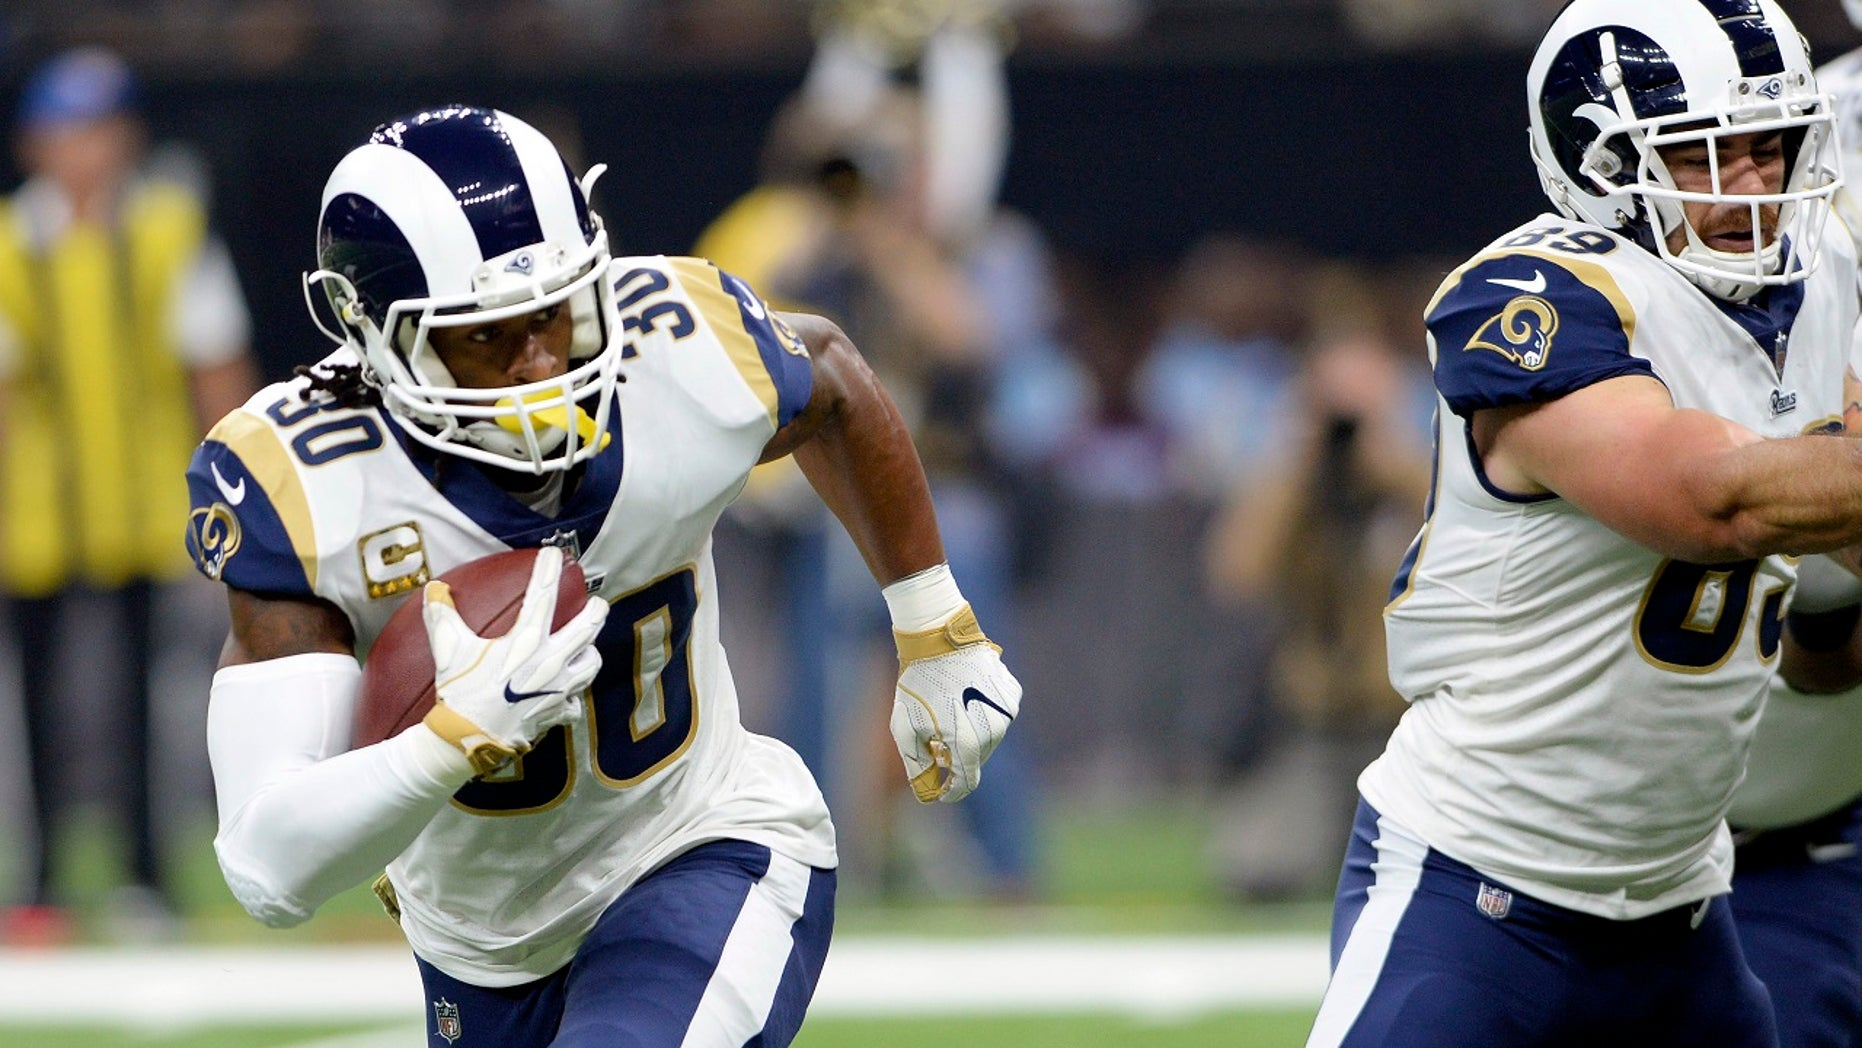 Rams Defeat Seahawks in See-Saw Game, Improve to 9-1